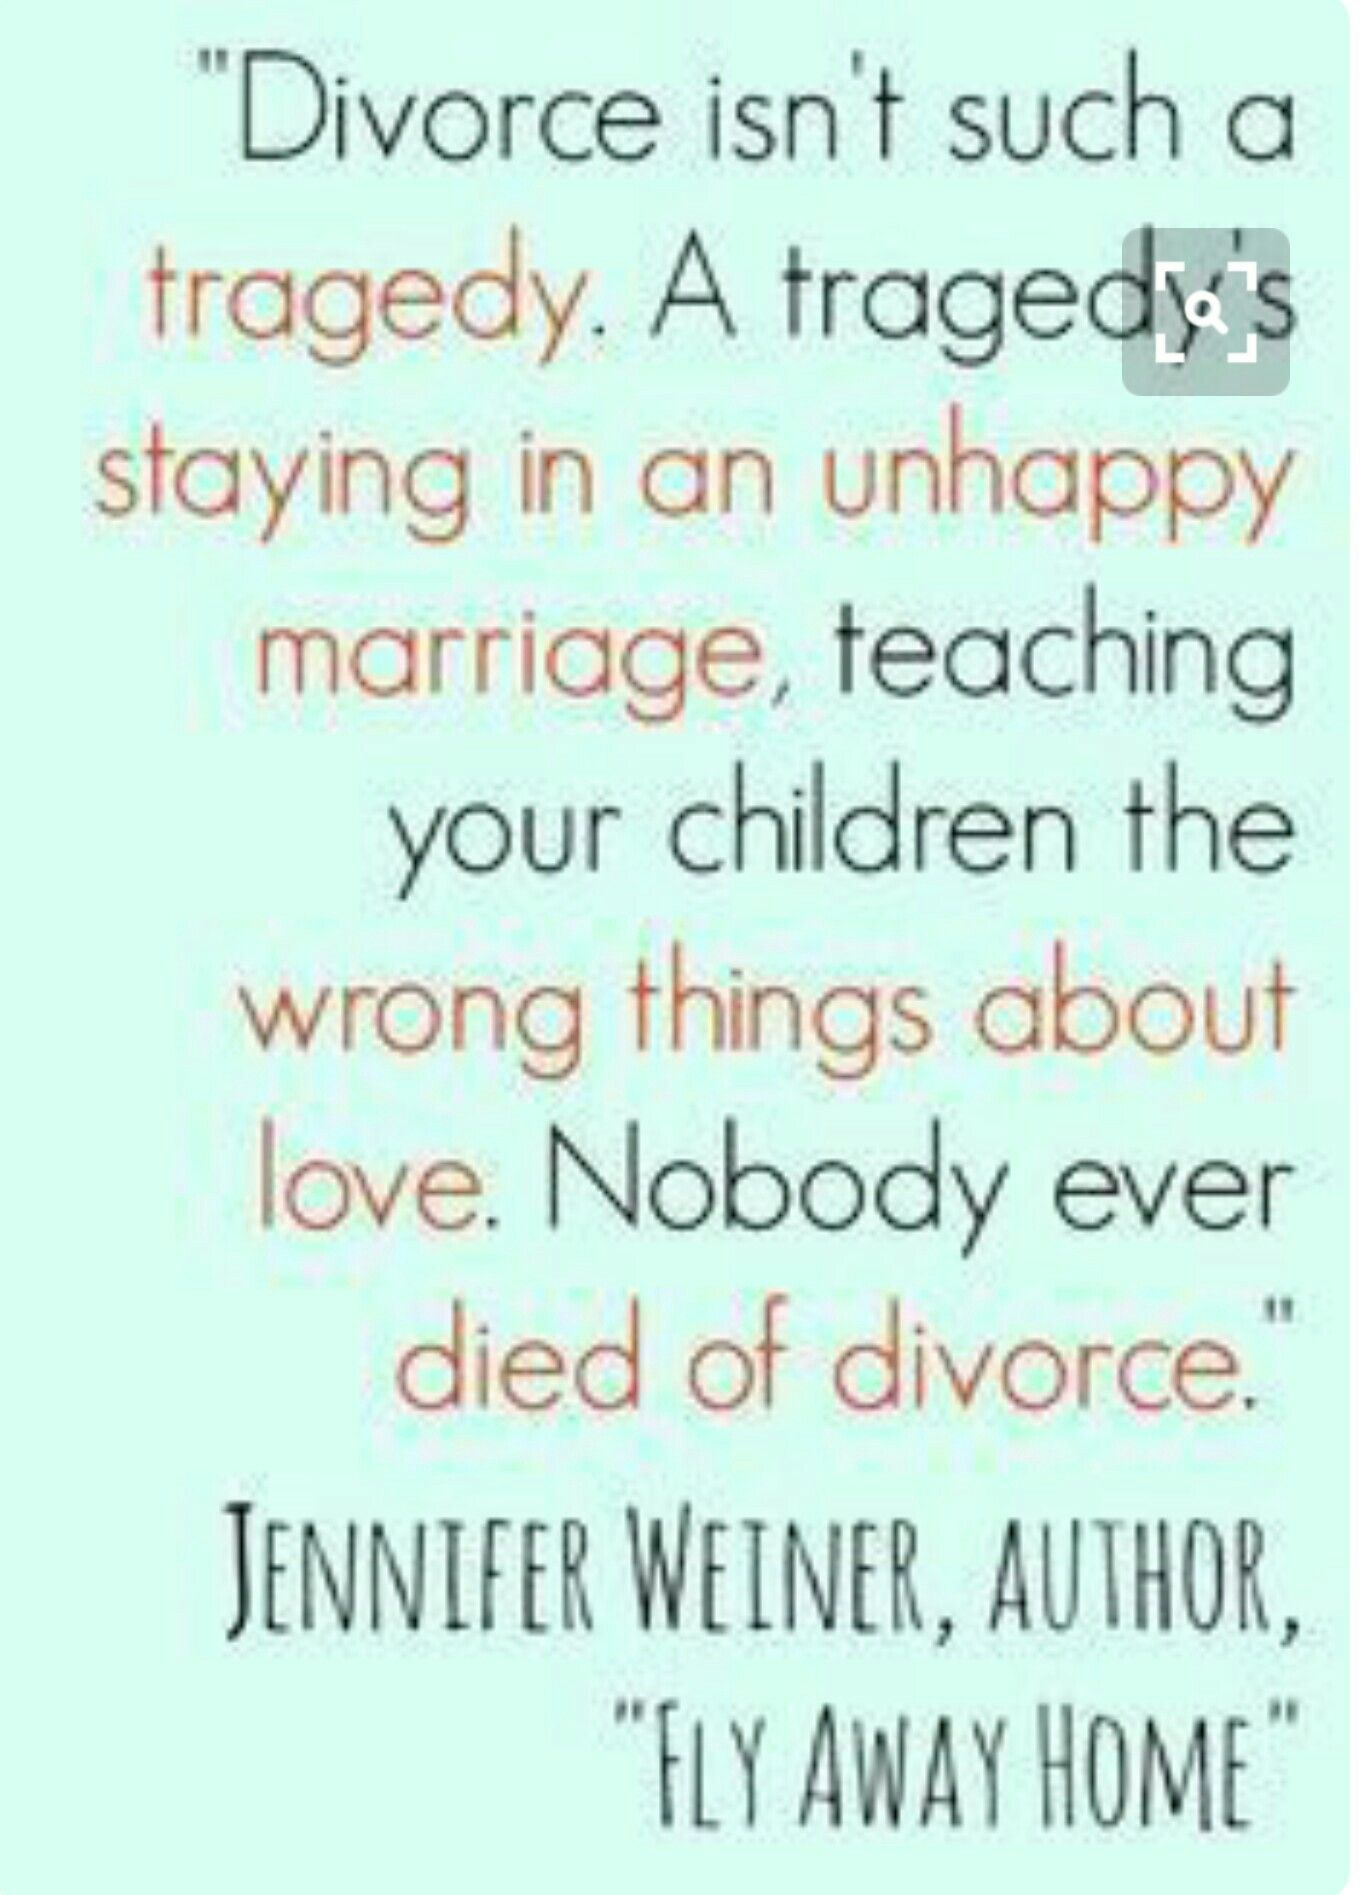 A tragedys staying in an unhappy marriage teaching your children a tragedys staying in an unhappy marriage teaching your children the wrong things about love words to live by pinterest funny divorce quotes solutioingenieria Choice Image